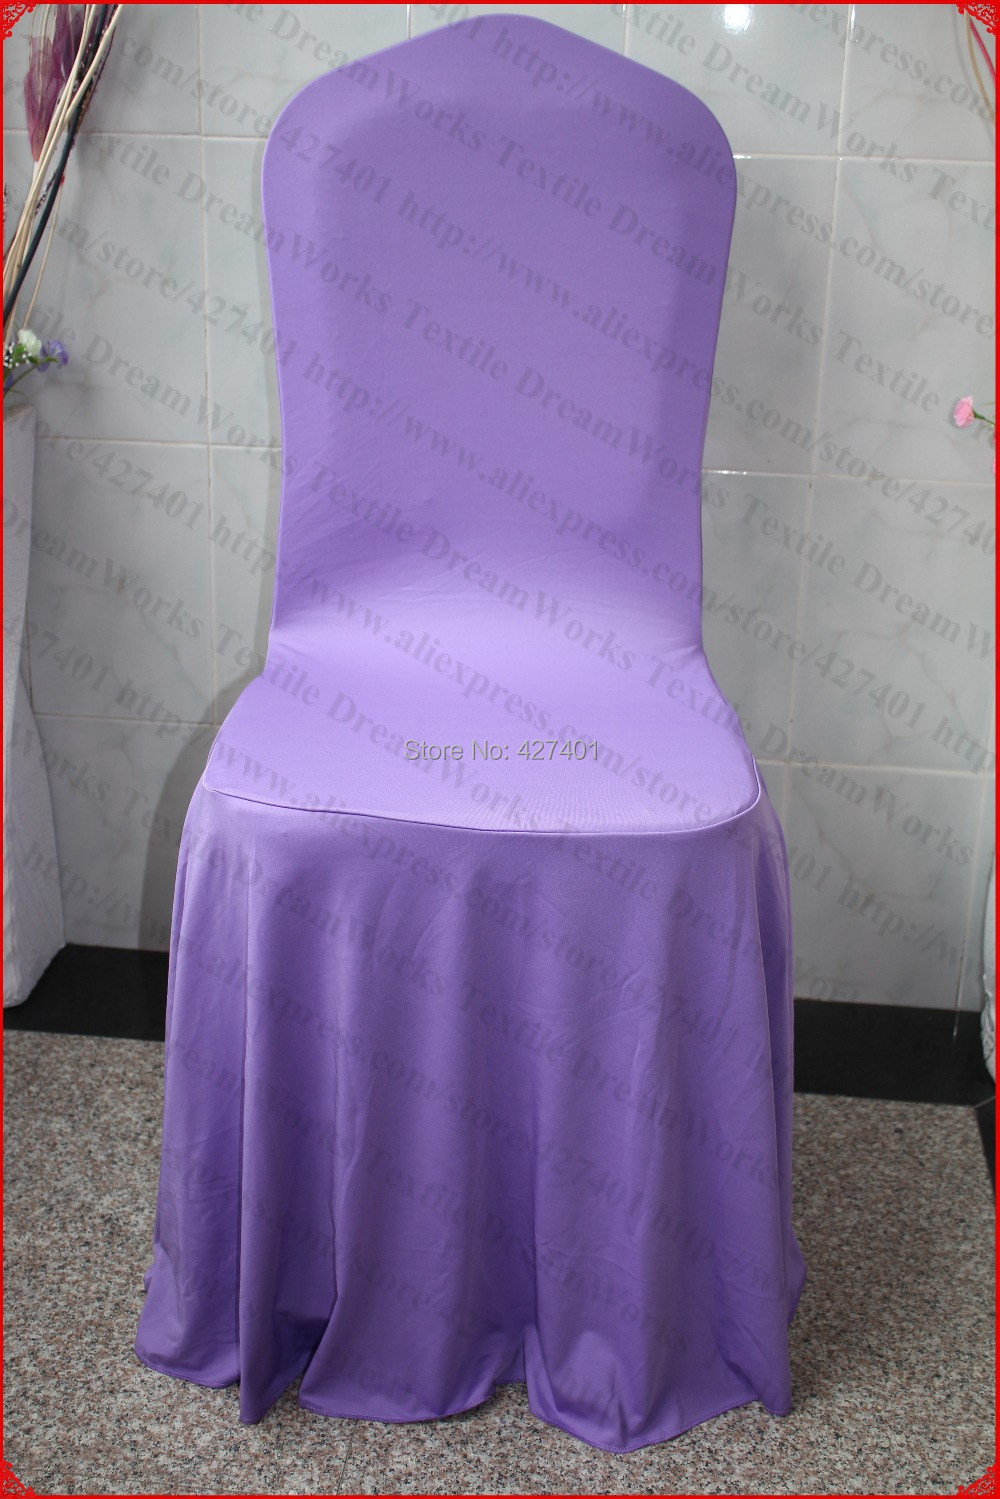 chair cover elegance childrens chairs target lavender elegant pleated swag spandex lycra backdrop for wedding party hotel banquet home decorations